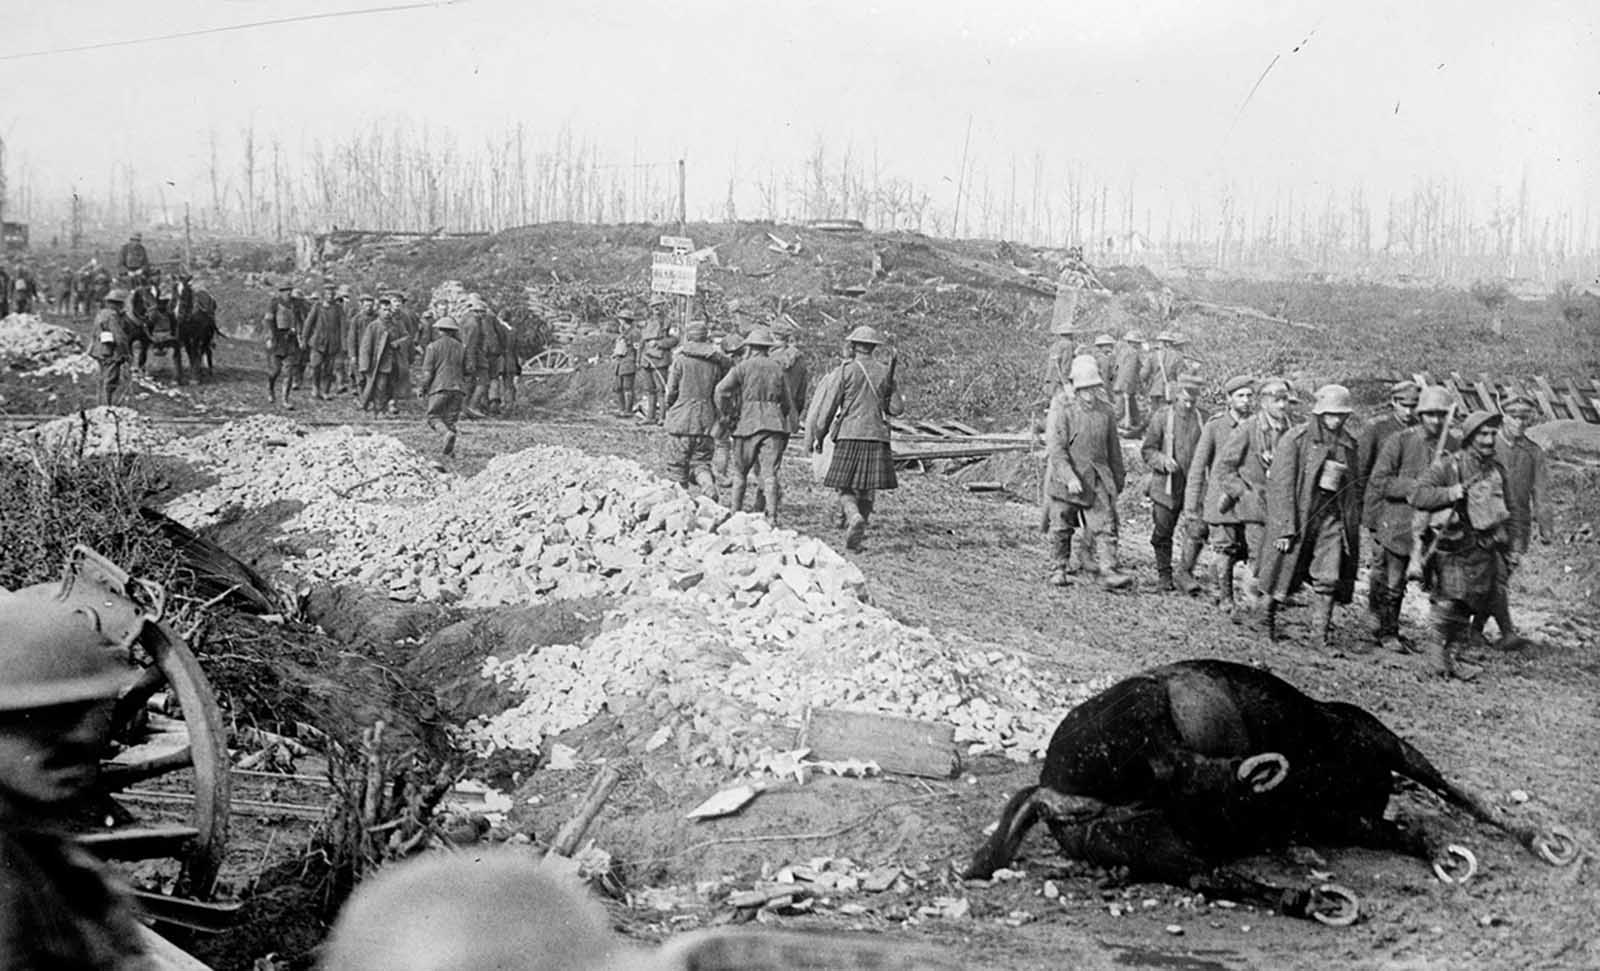 British soldiers and Highlanders with German prisoners walk past war ruins and a dead horse, after the Battle of the Menin Road Ridge, part of the Third Battle of Ypres in September of 1917. The sign near the railroad tracks reads (possibly):